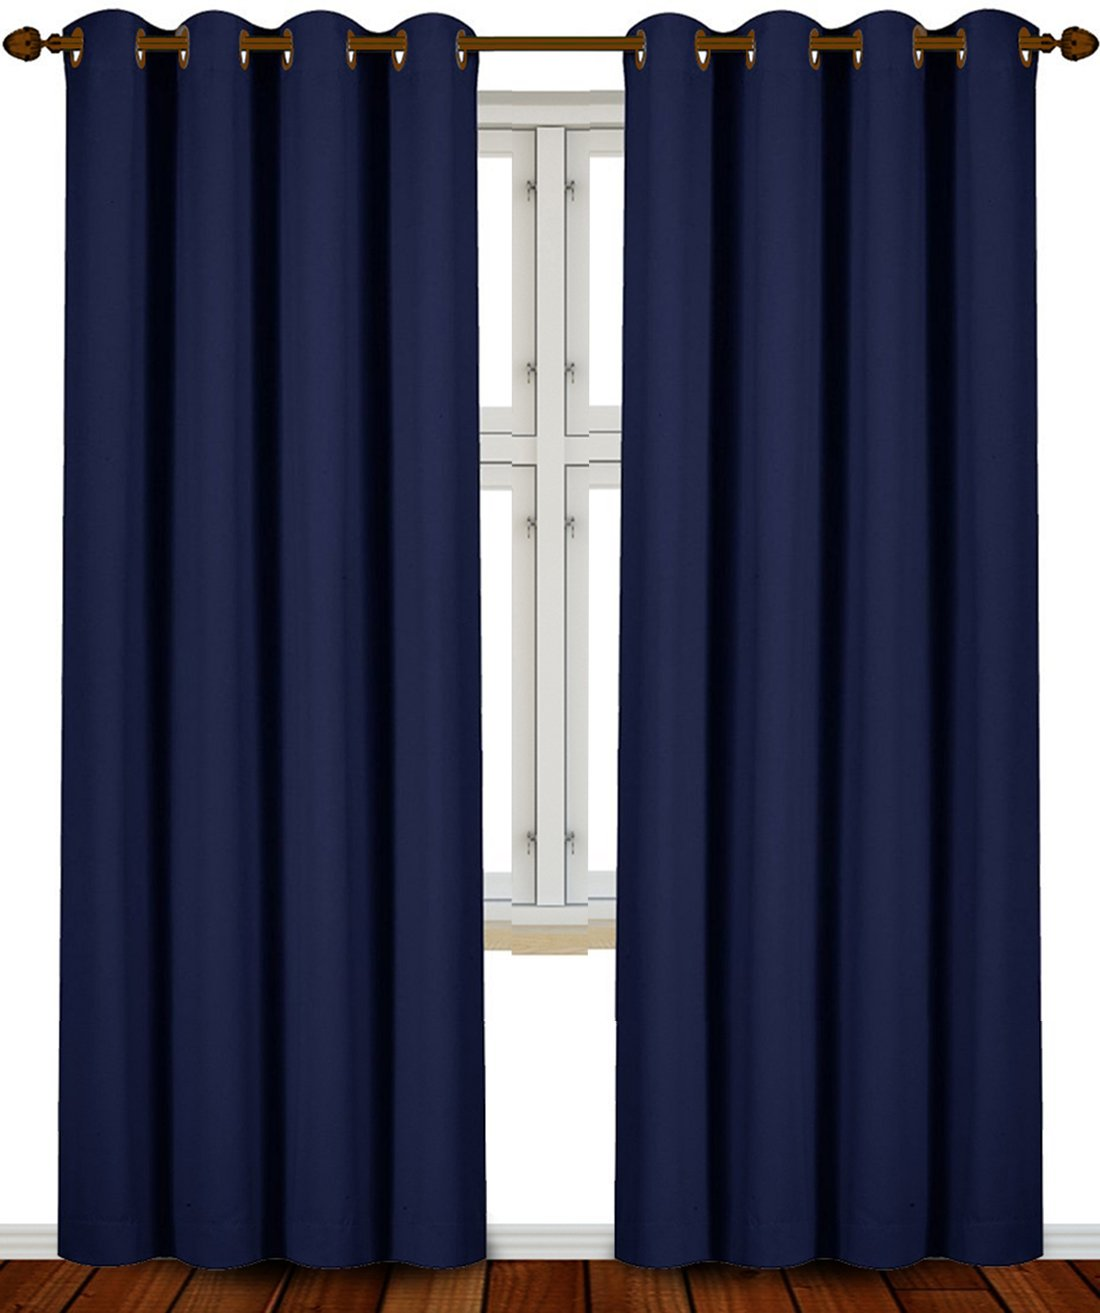 Utopia Bedding - Blackout Room Darkening and Thermal Insulating Window Curtains / Panels / Drapes